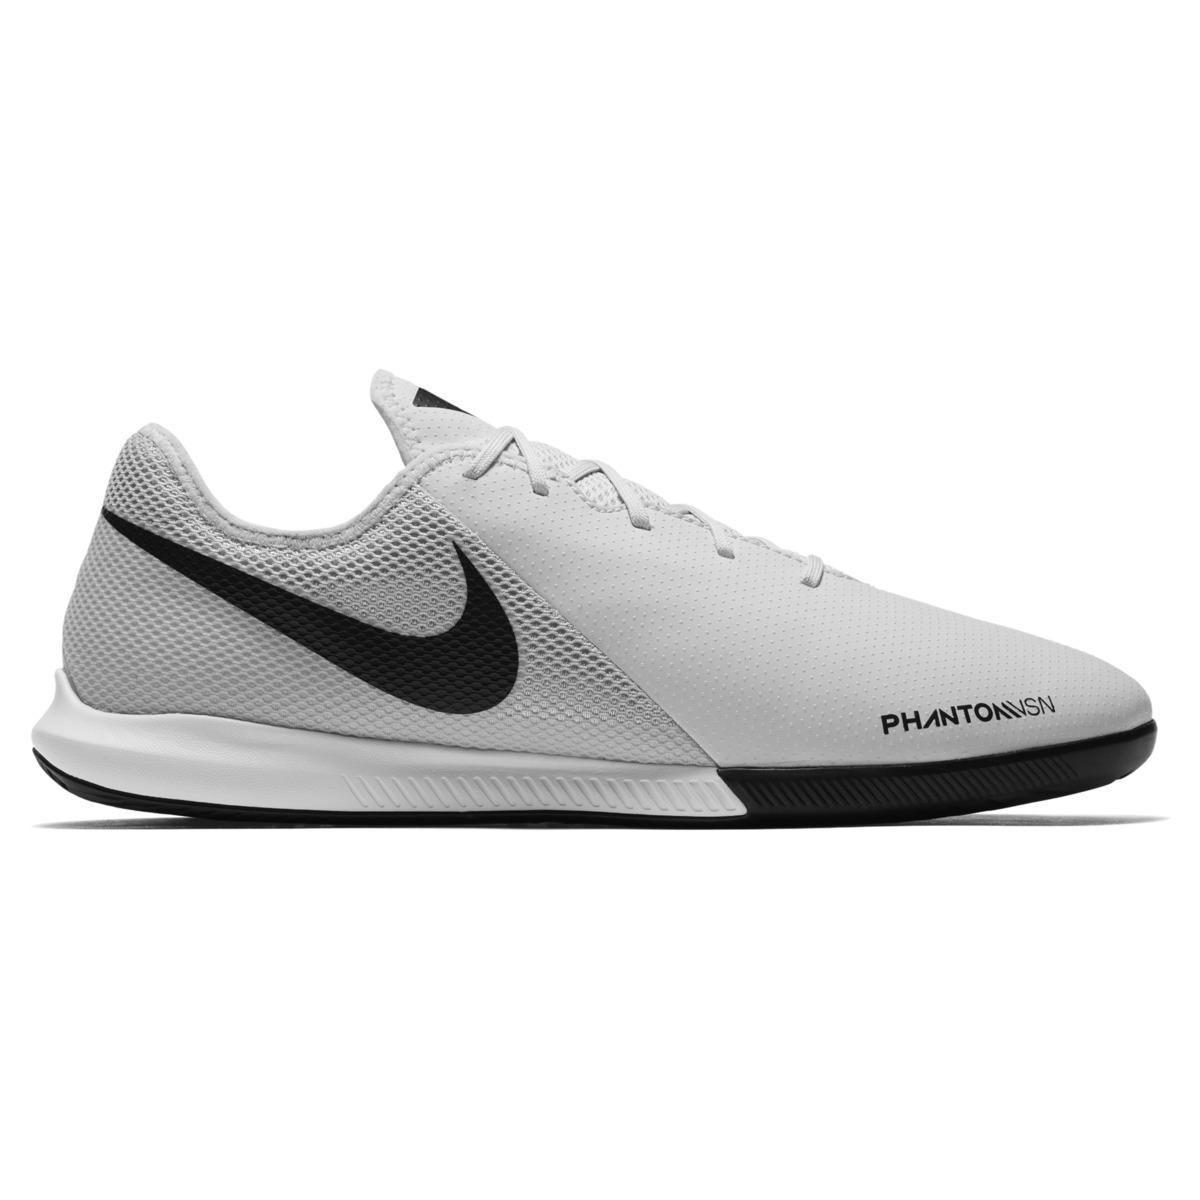 c9fd9428be8 Nike Phantom Vision Academy Dynamic Fit Ic Indoor Football Boots in ...